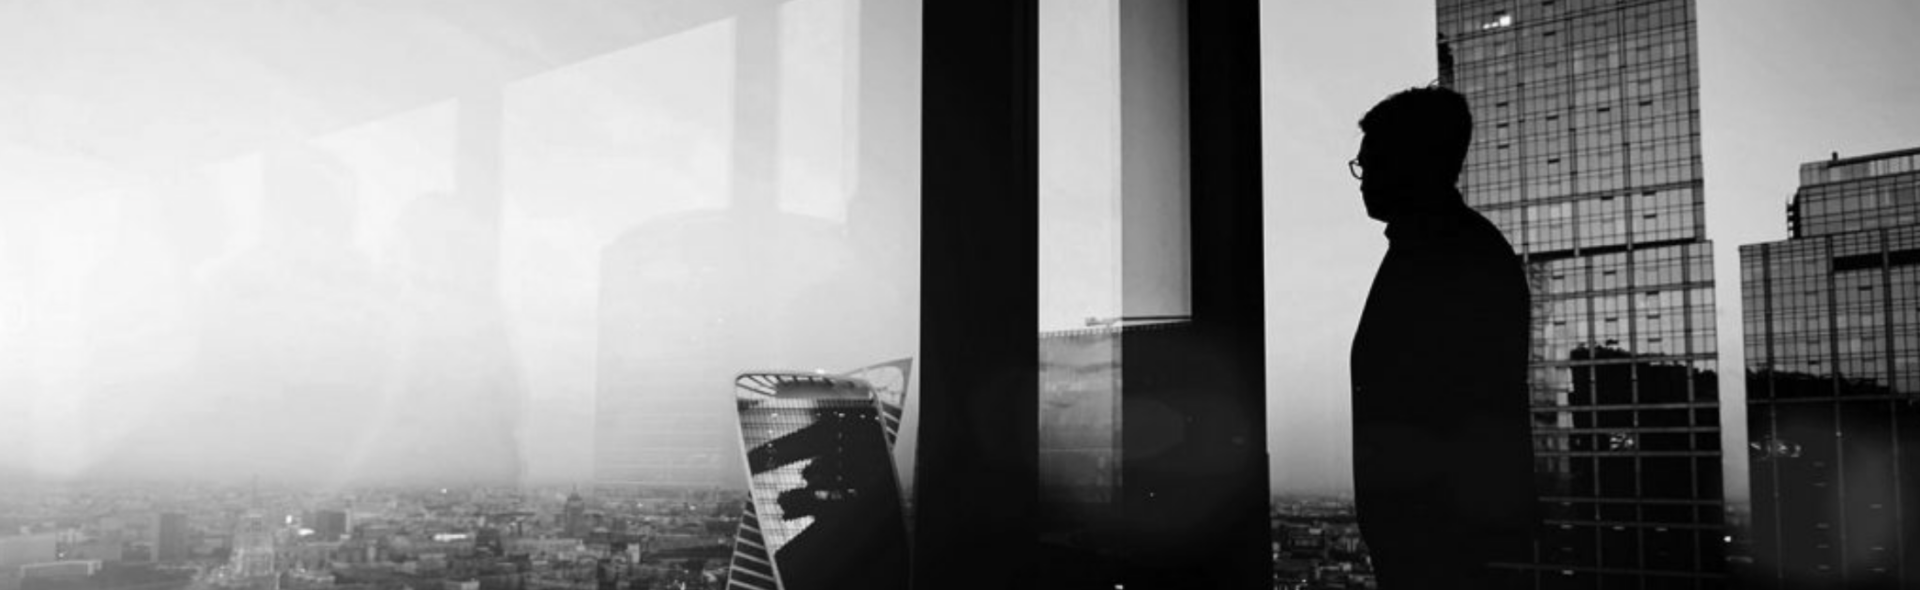 black and white image of man standing in high rise office building looking at city Knowledge Innovation Center